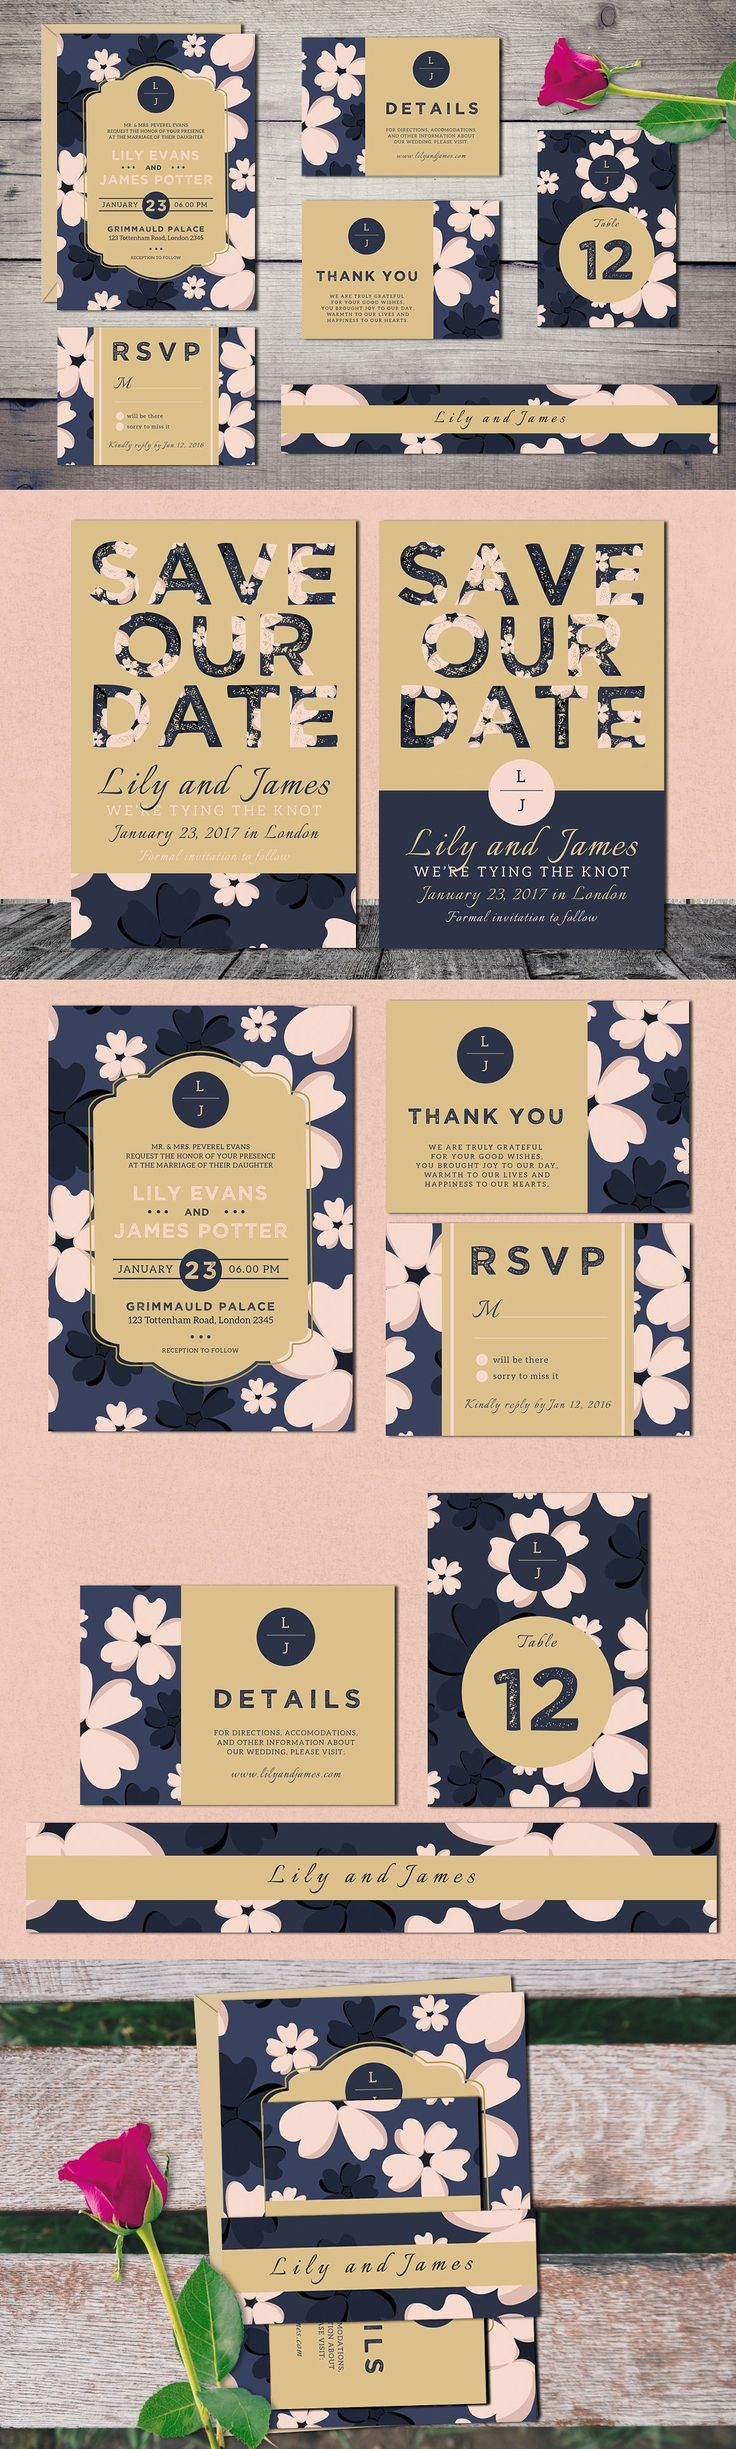 free wedding invitation psd%0A Bloomy  Wedding Invitation Suite Template PSD  PDF